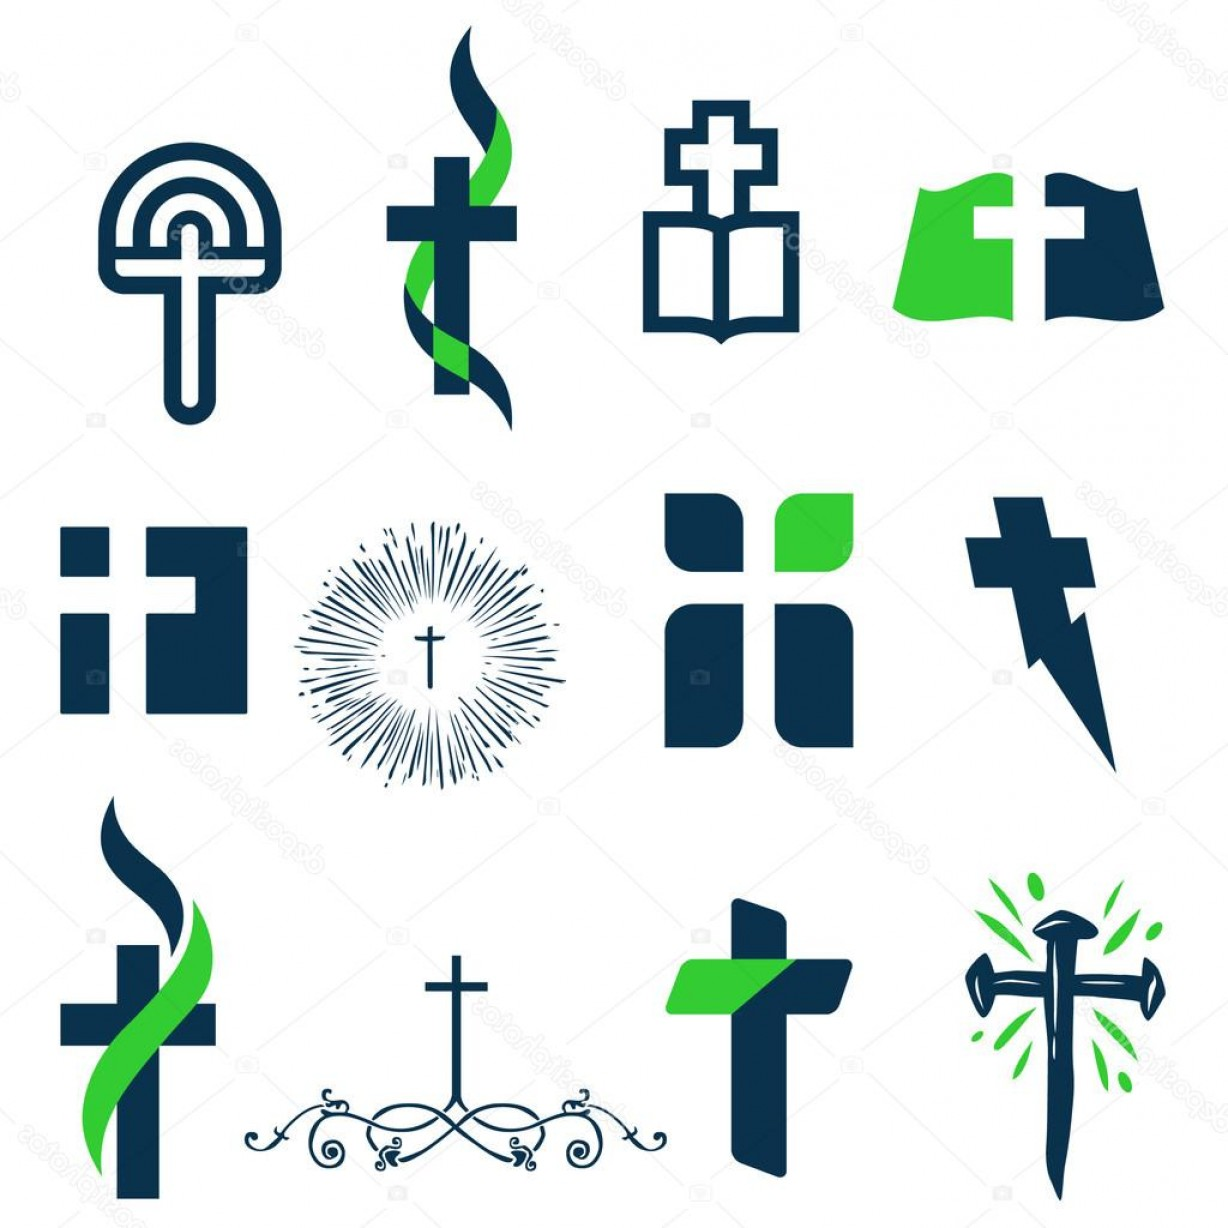 Cross Vector Logos: Stock Illustration Collection Of Cross Logos